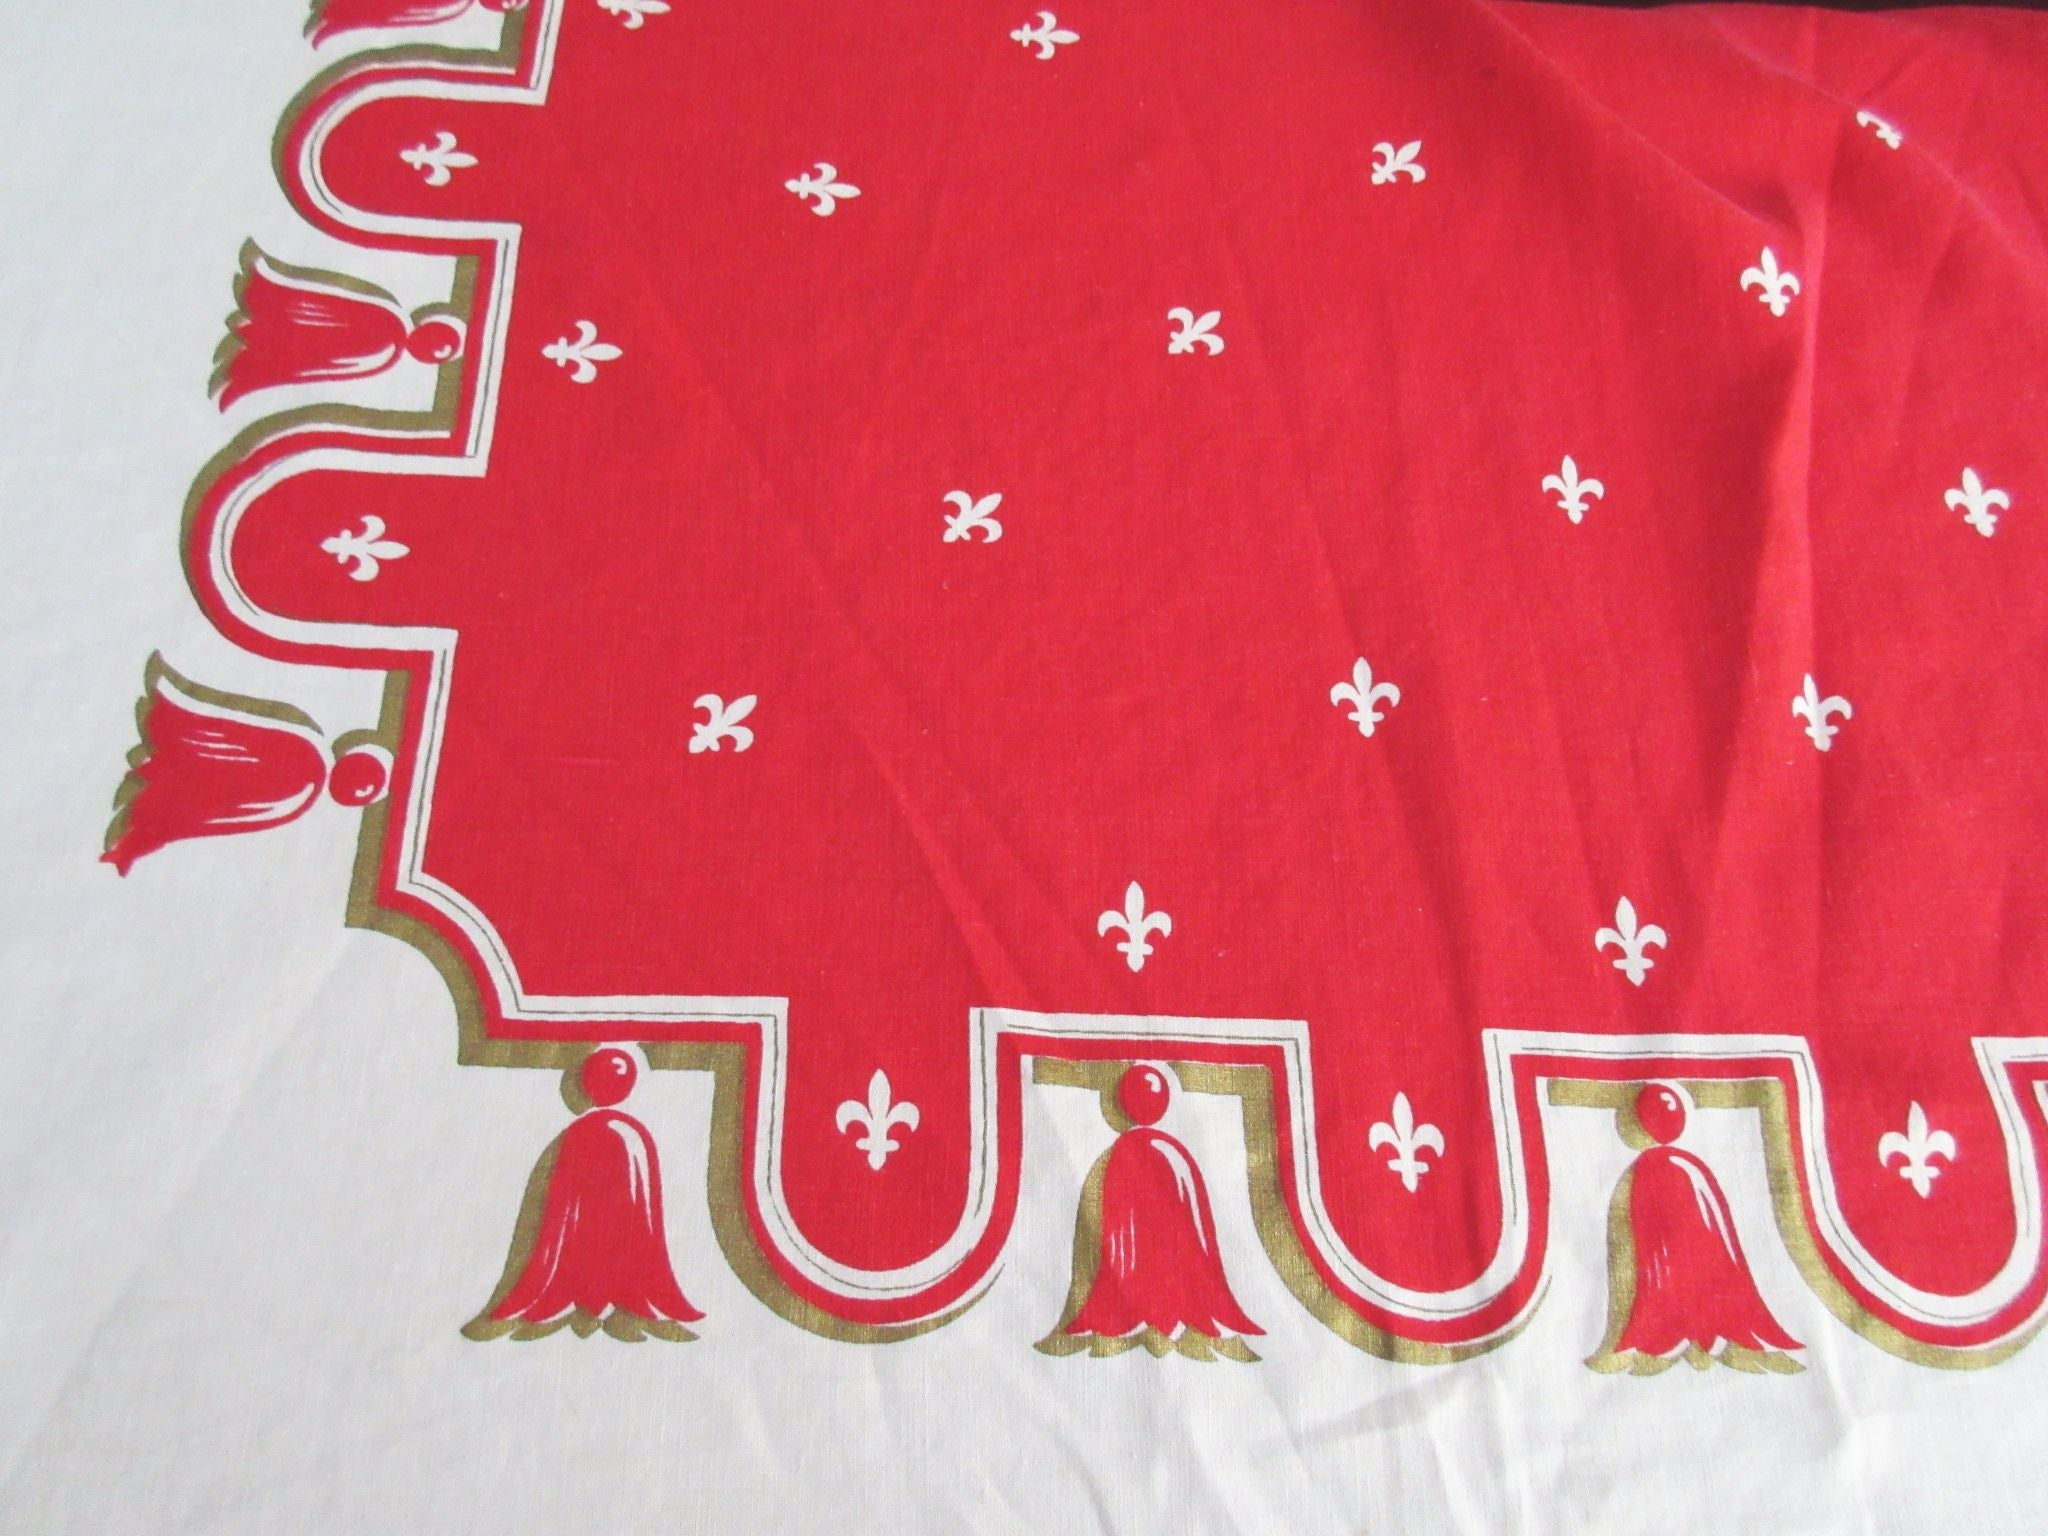 Giant Gold Fleur de Lis Tassels on Red Holiday Christmas Novelty Vintage Printed Tablecloth (99 X 61)